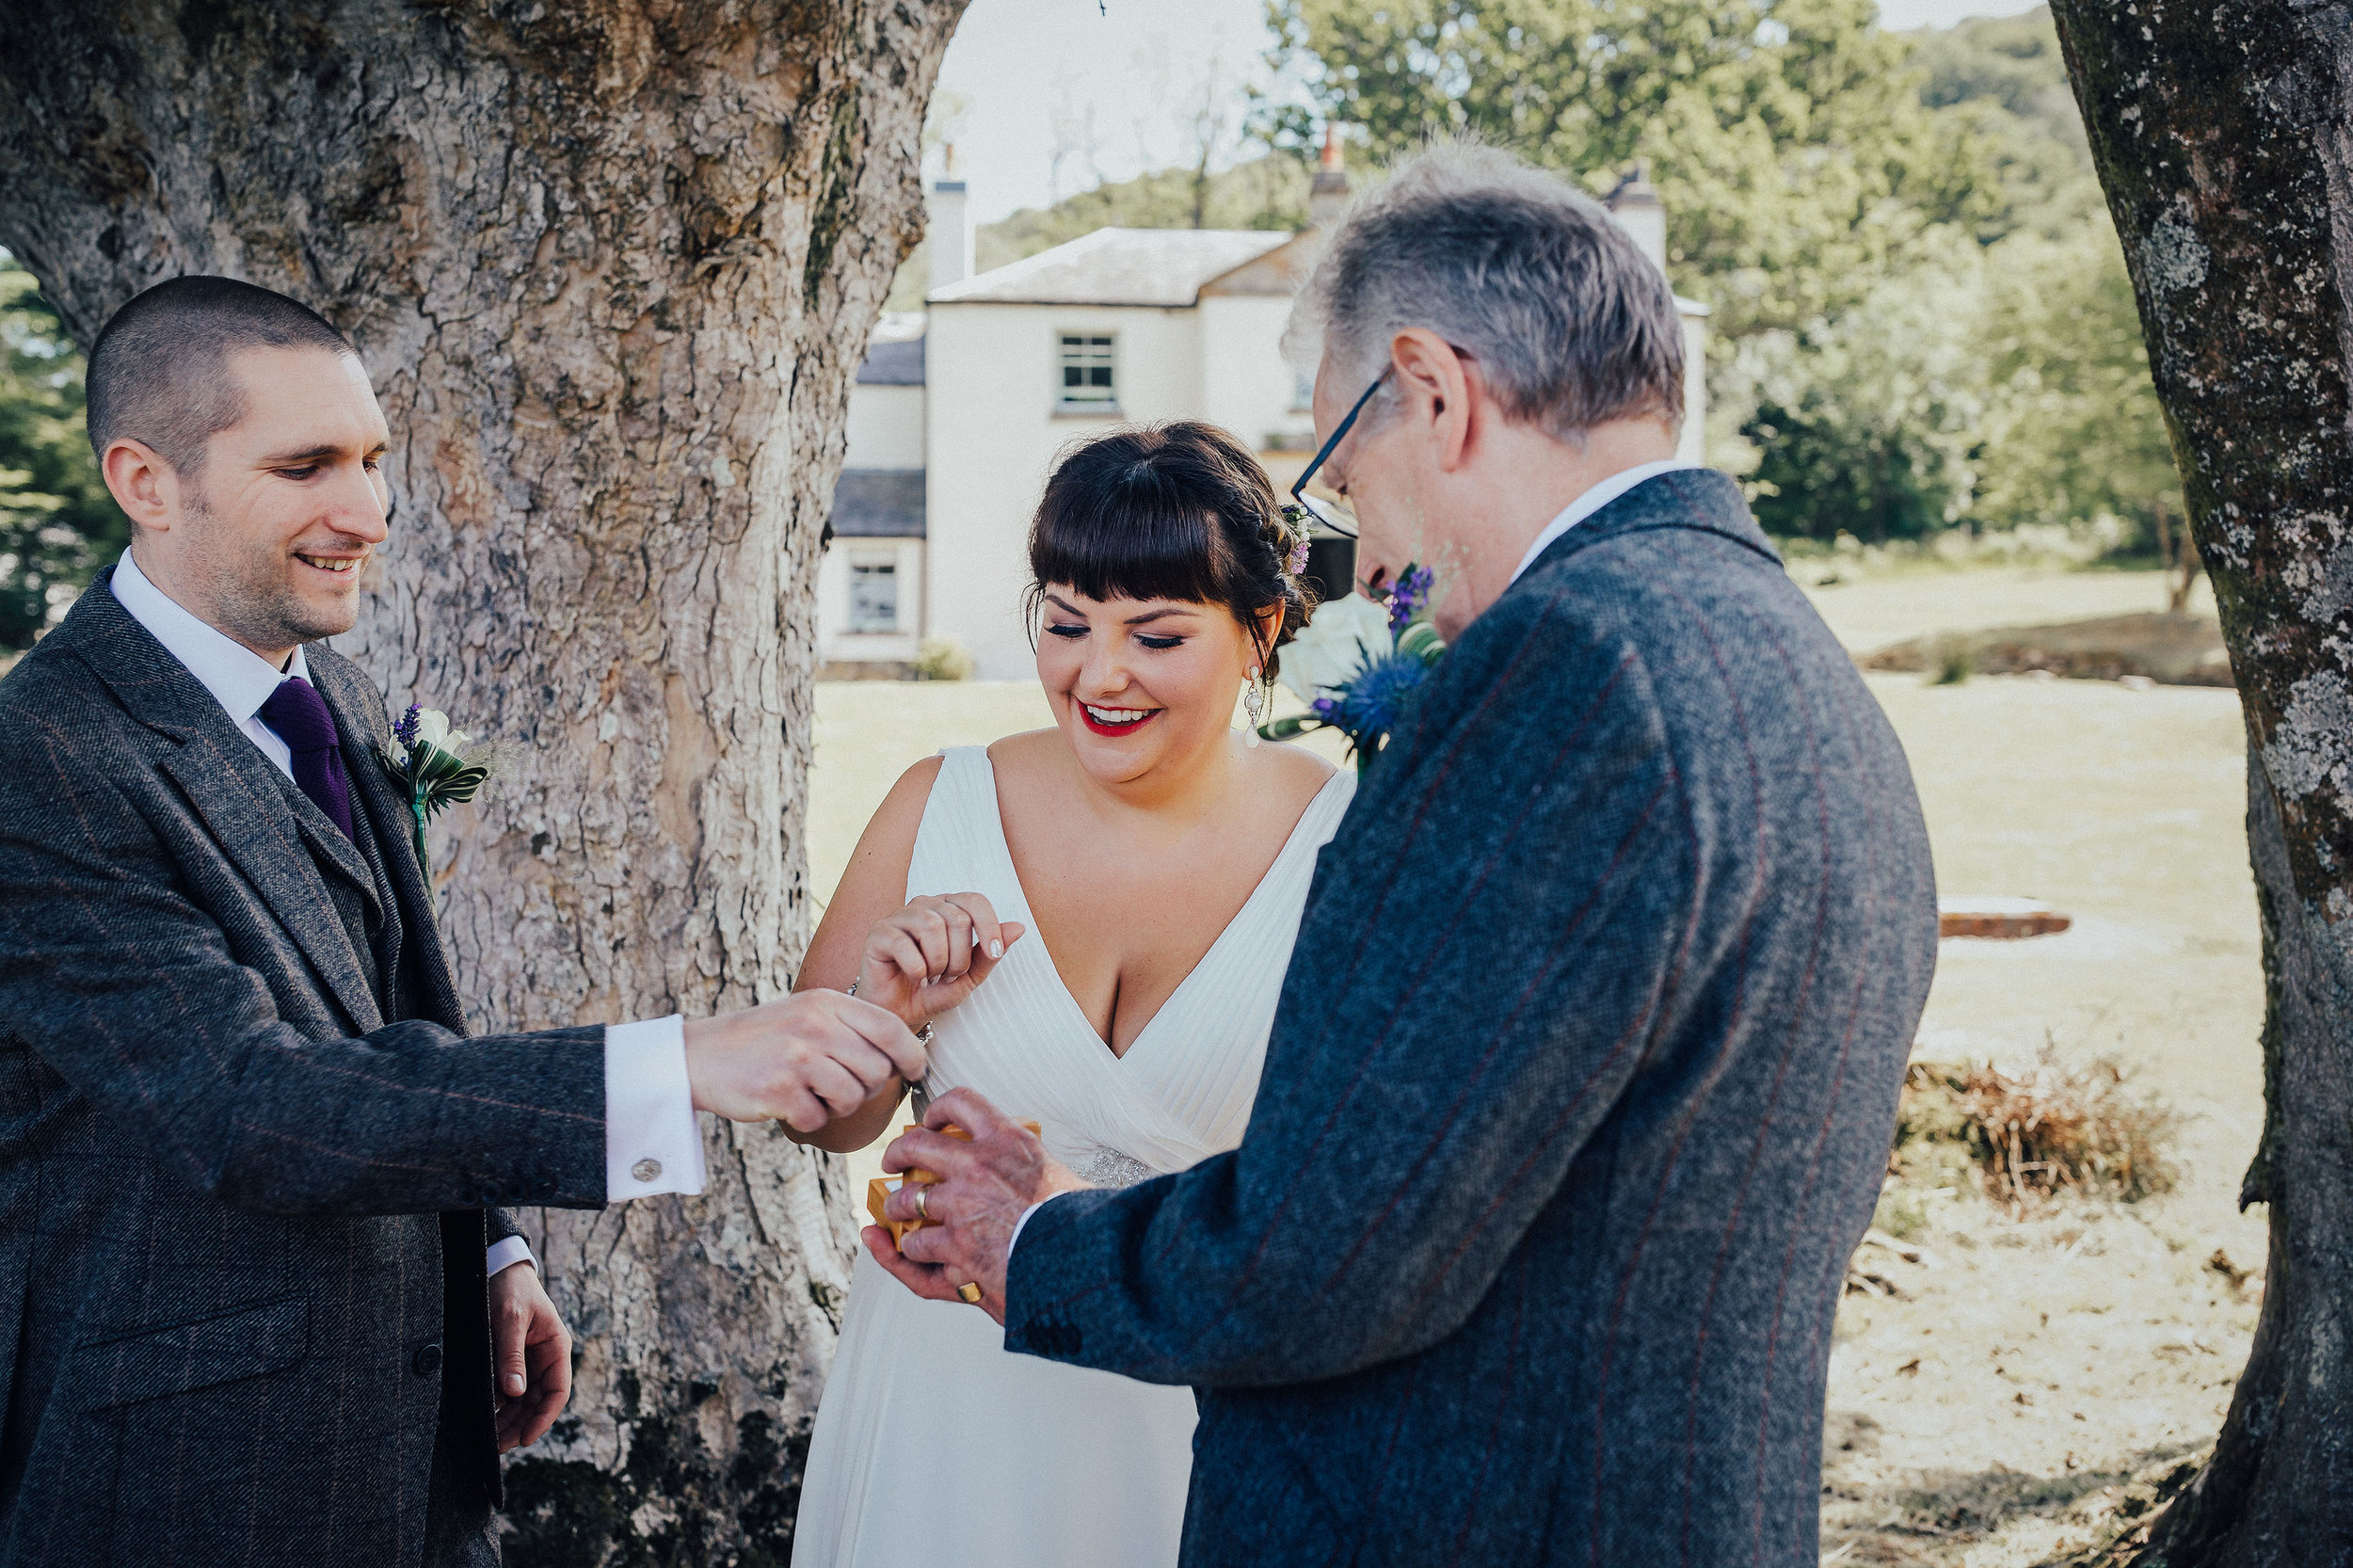 SCOTTISH_ELOPEMENT_PHOTOGRAPHER_PJ_PHILLIPS_PHOTOGRAPHY_64.jpg